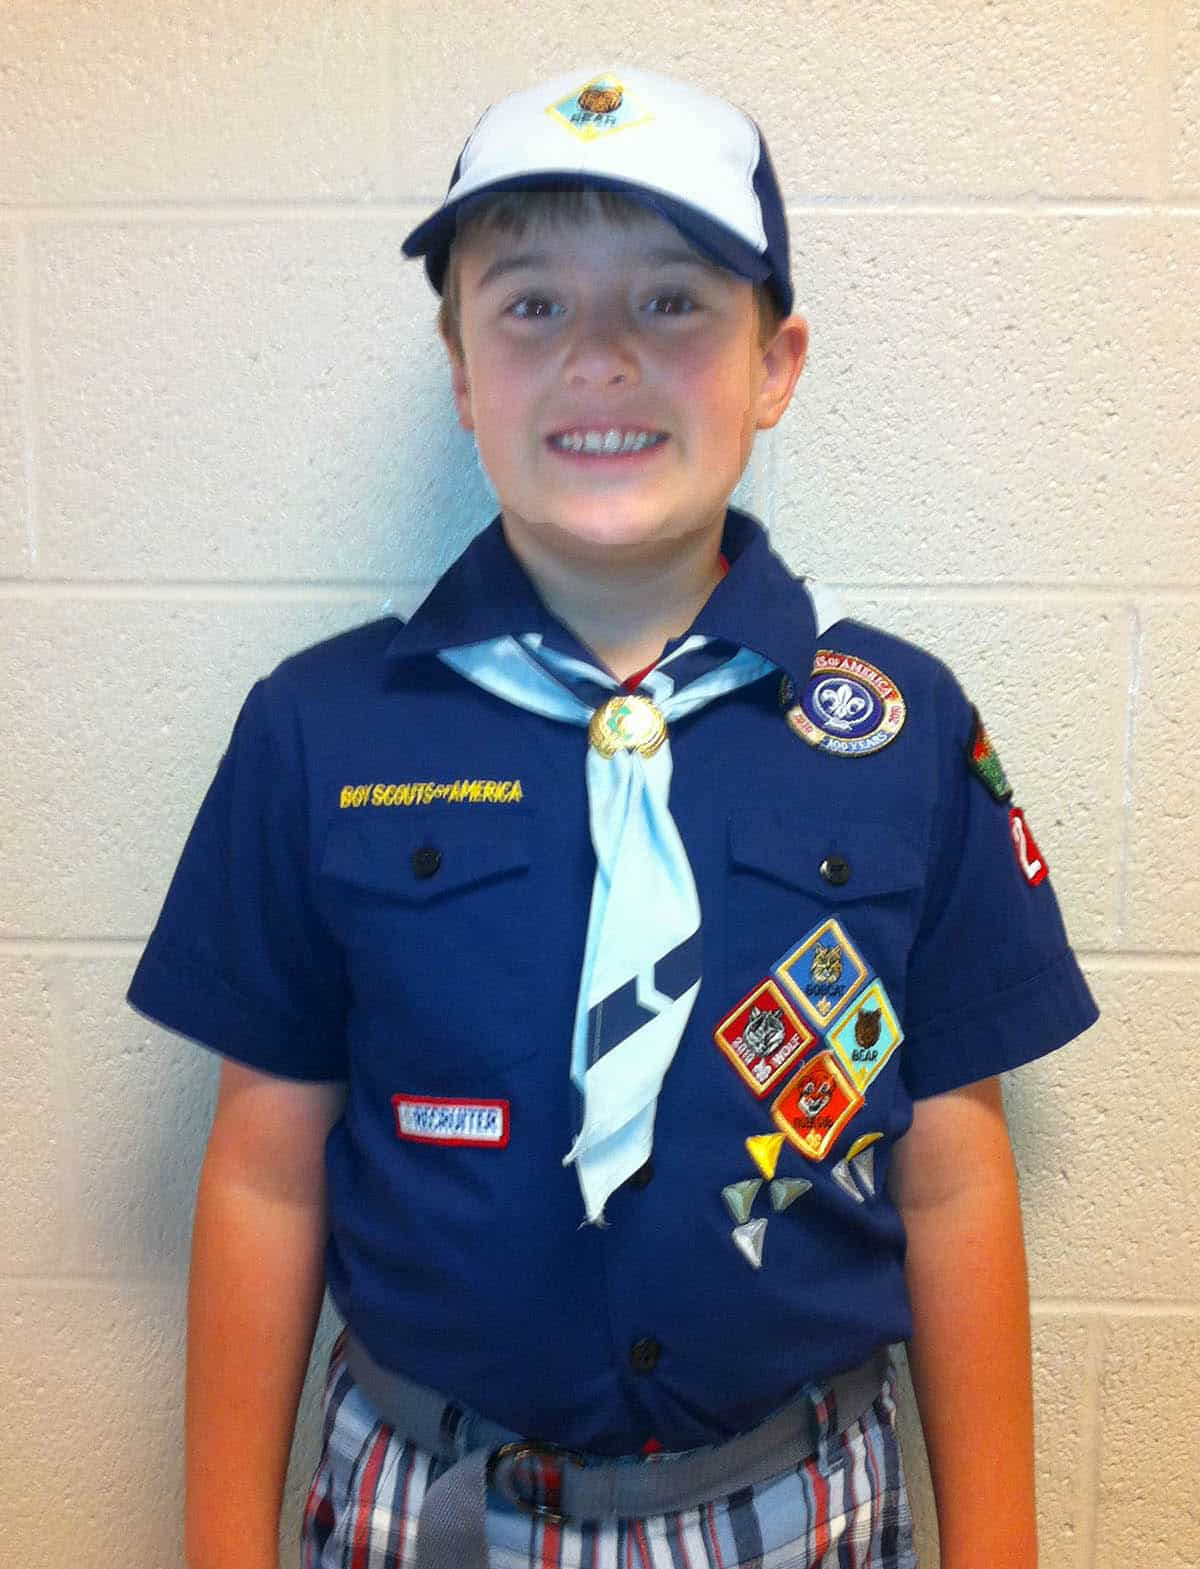 Bear Cub Scout uniform